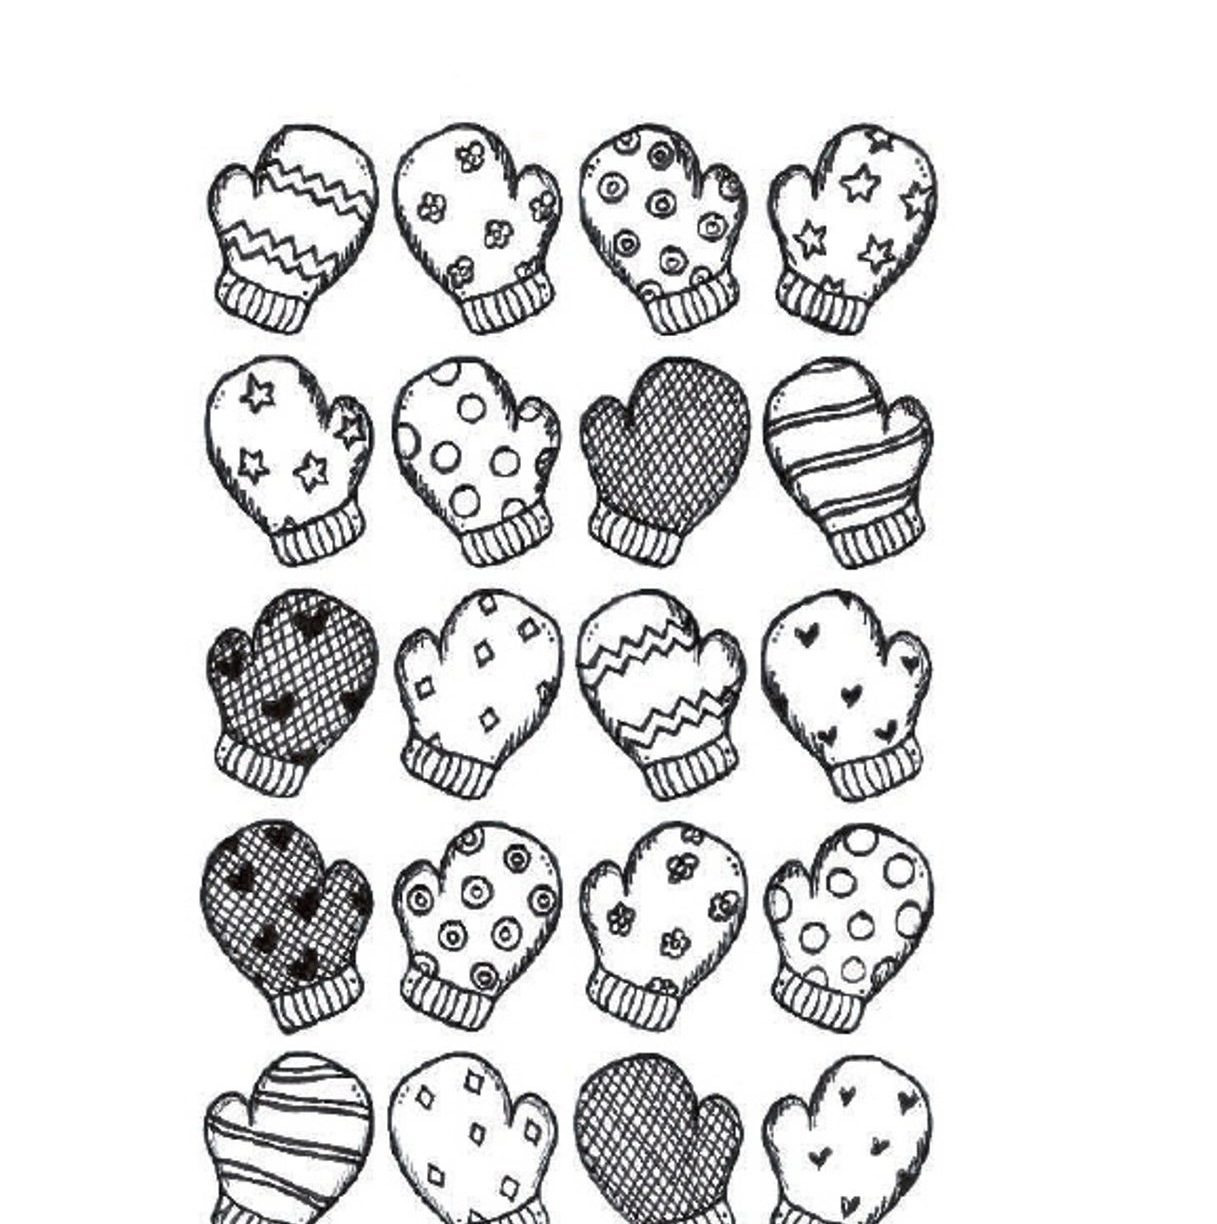 Mittens Drawing at GetDrawings.com   Free for personal use Mittens ...